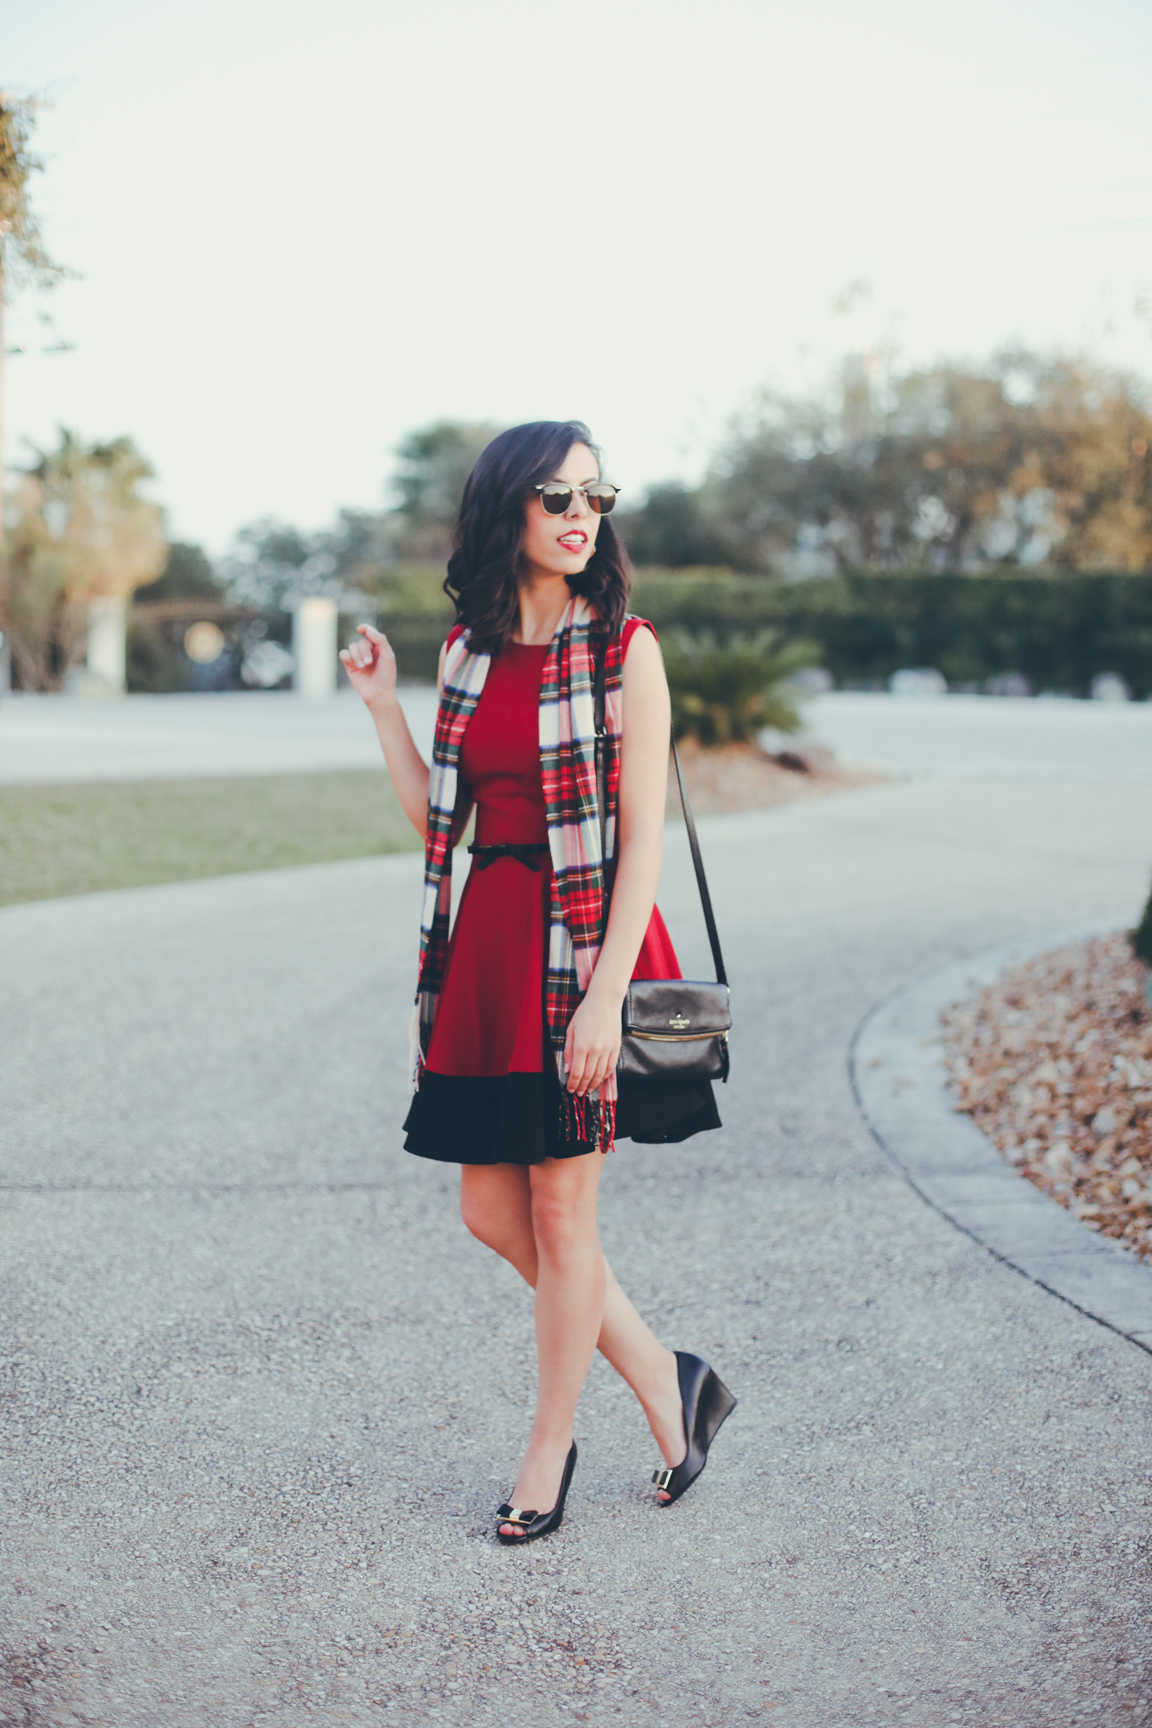 austin texas, austin fashion blog, austin fashion blogger, austin fashion, austin fashion blog, pinterest outfit, off the shoulder dress, austin style, austin style blog, austin style blogger, austin style bloggers, style bloggers, red dress, winter outfit ideas, holiday outfit ideas